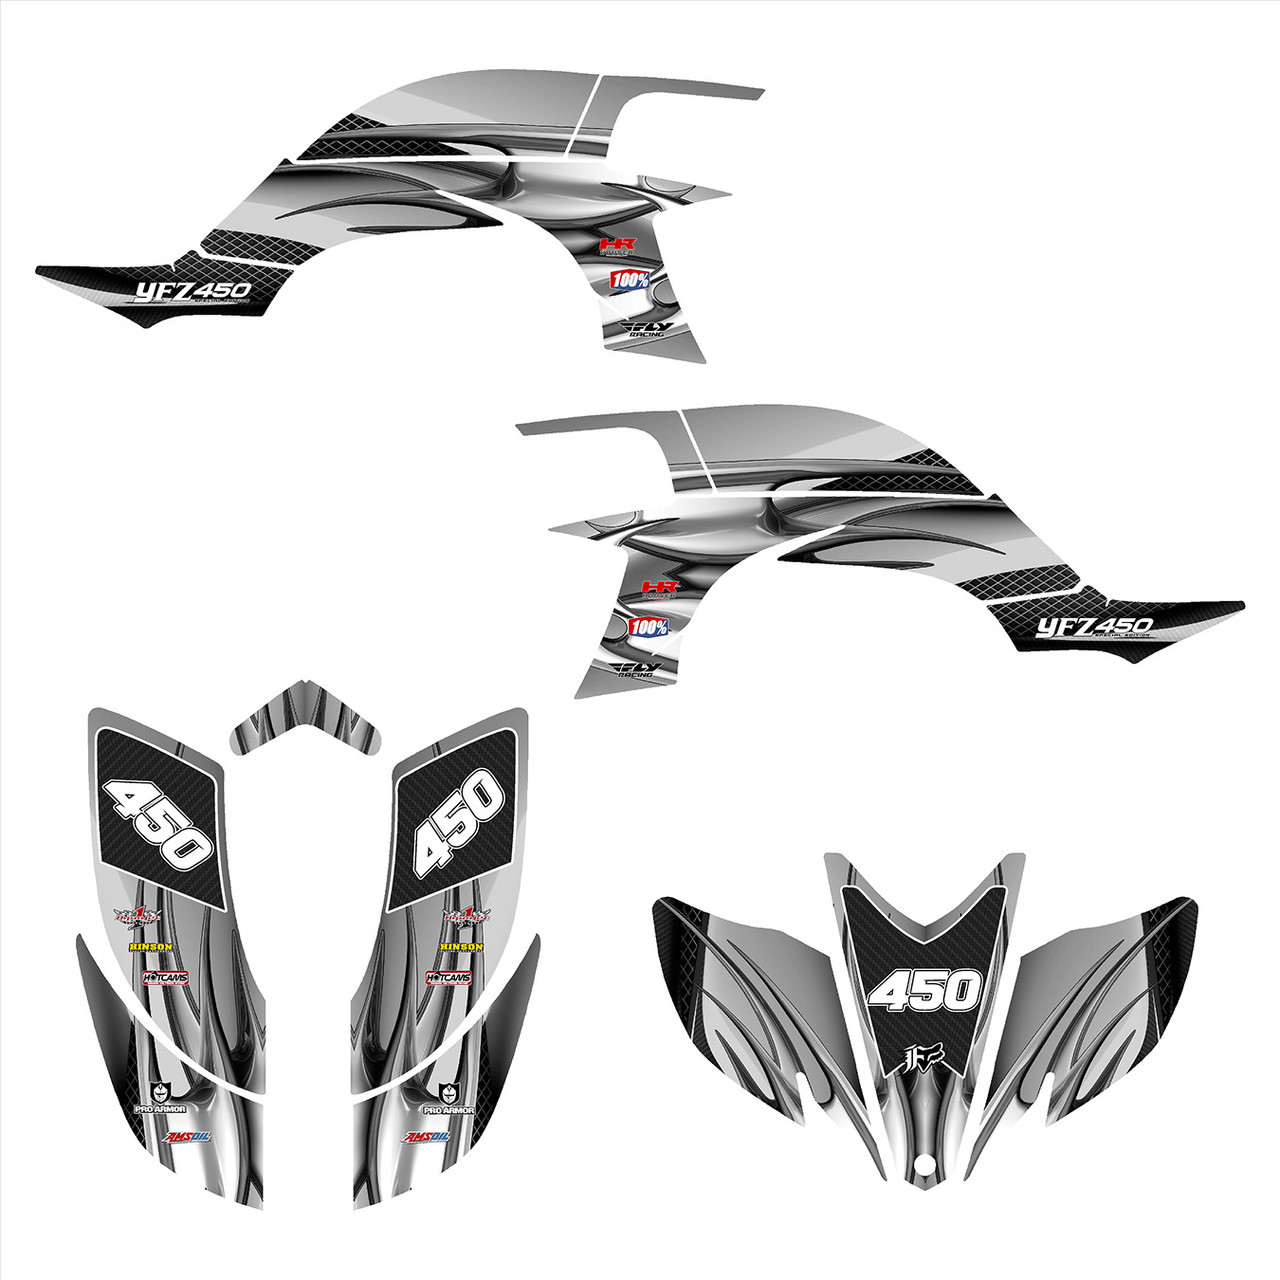 2004 Yamaha YFZ 450 graphics decal kit